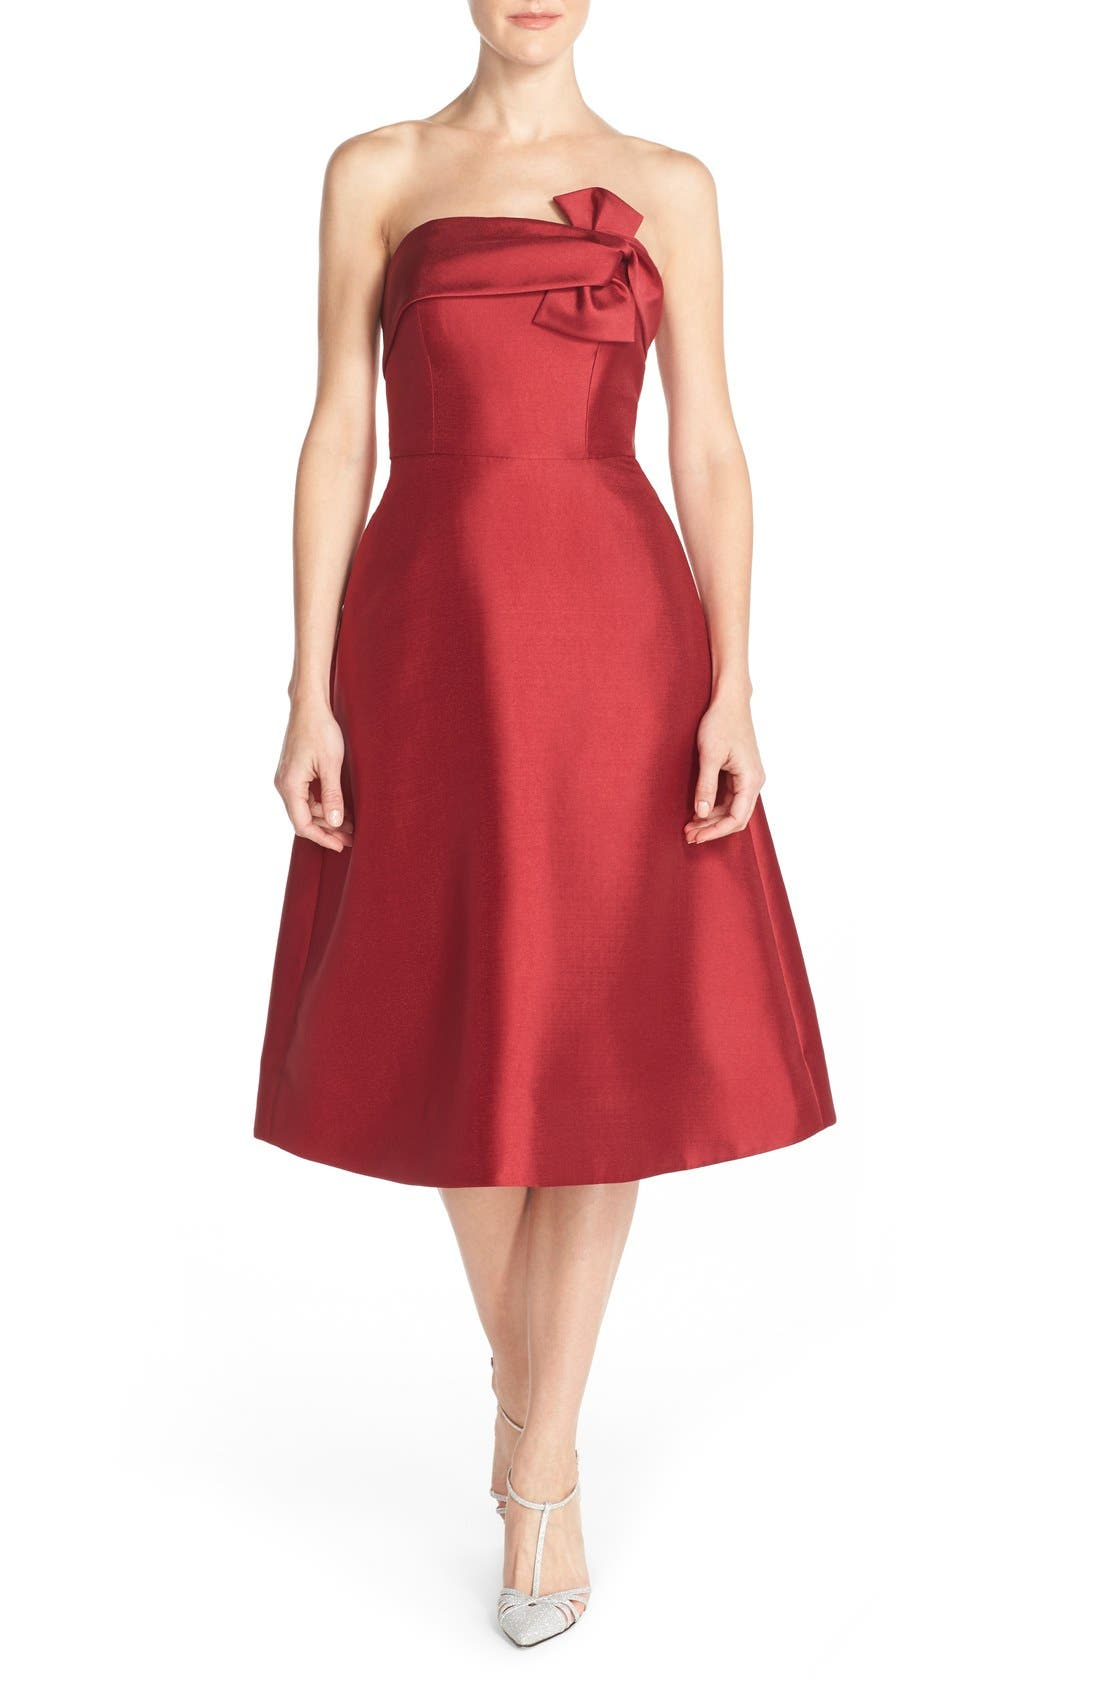 Main Image - ERIN erin fetherston 'Katie' Bow Neck Twill Fit & Flare Dress